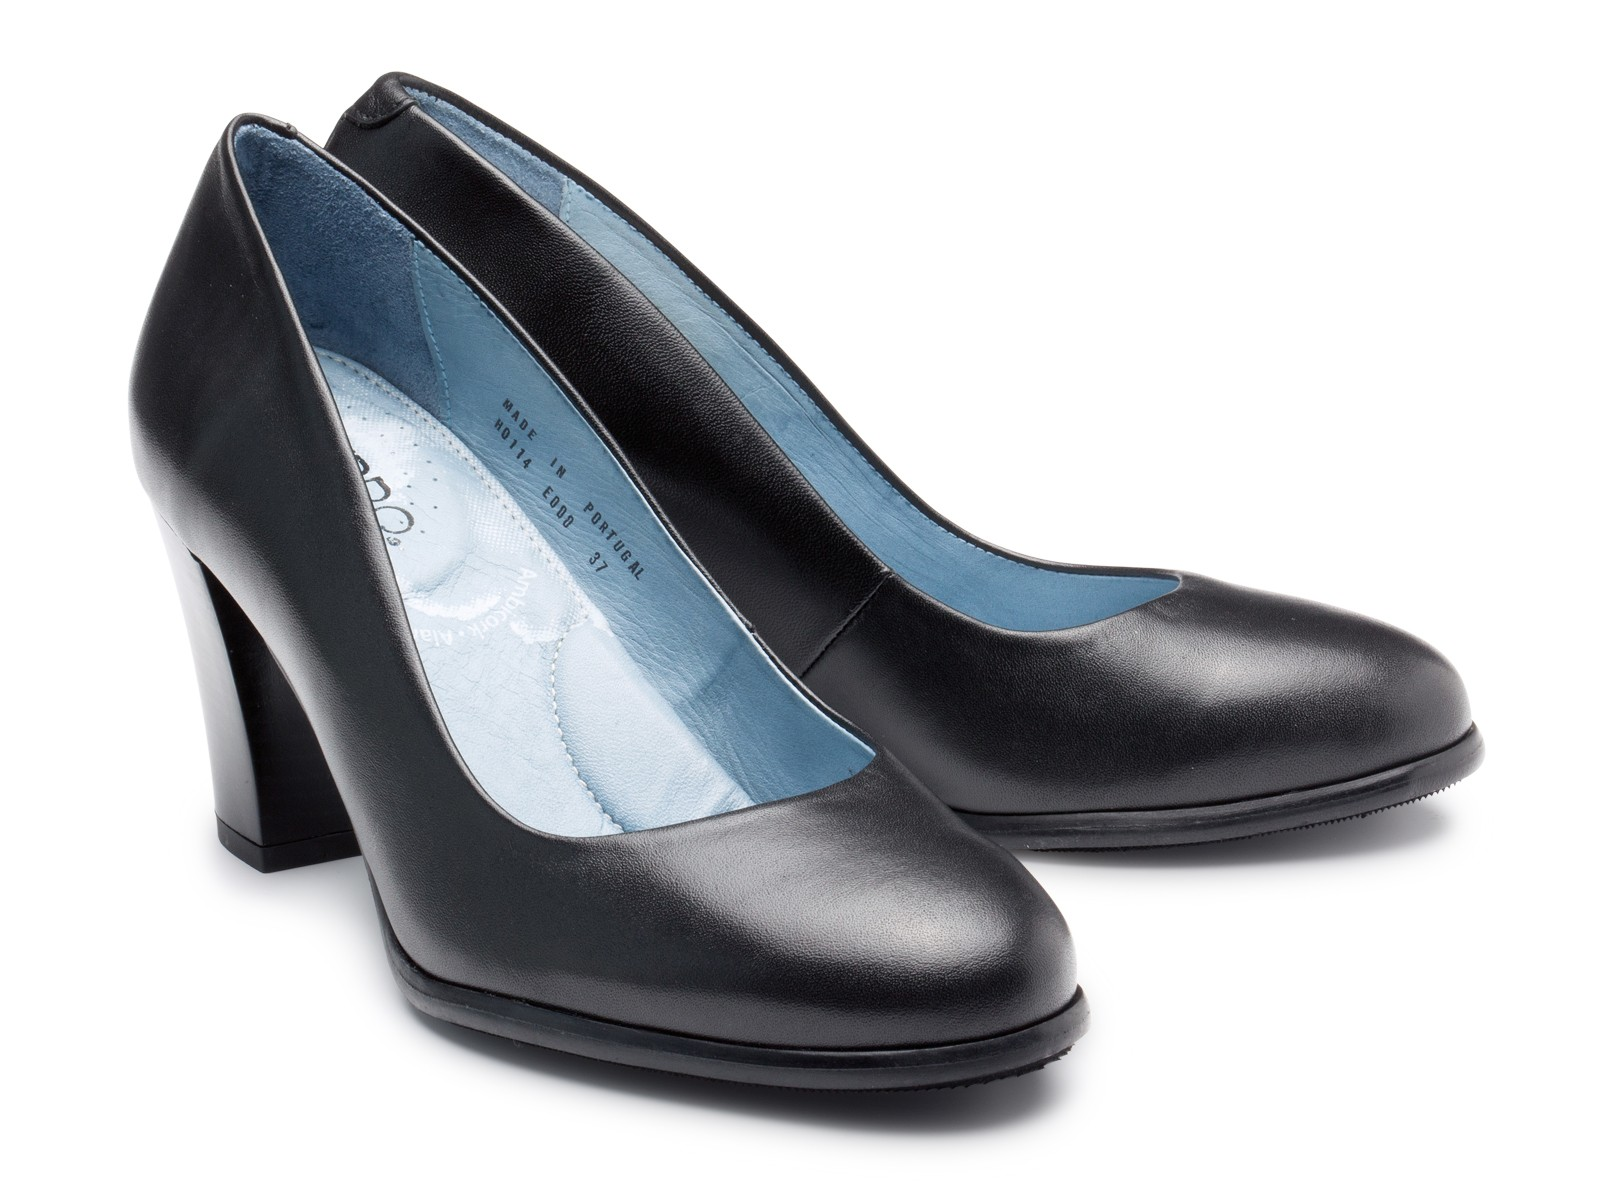 Nancy Bird shoe model in black.